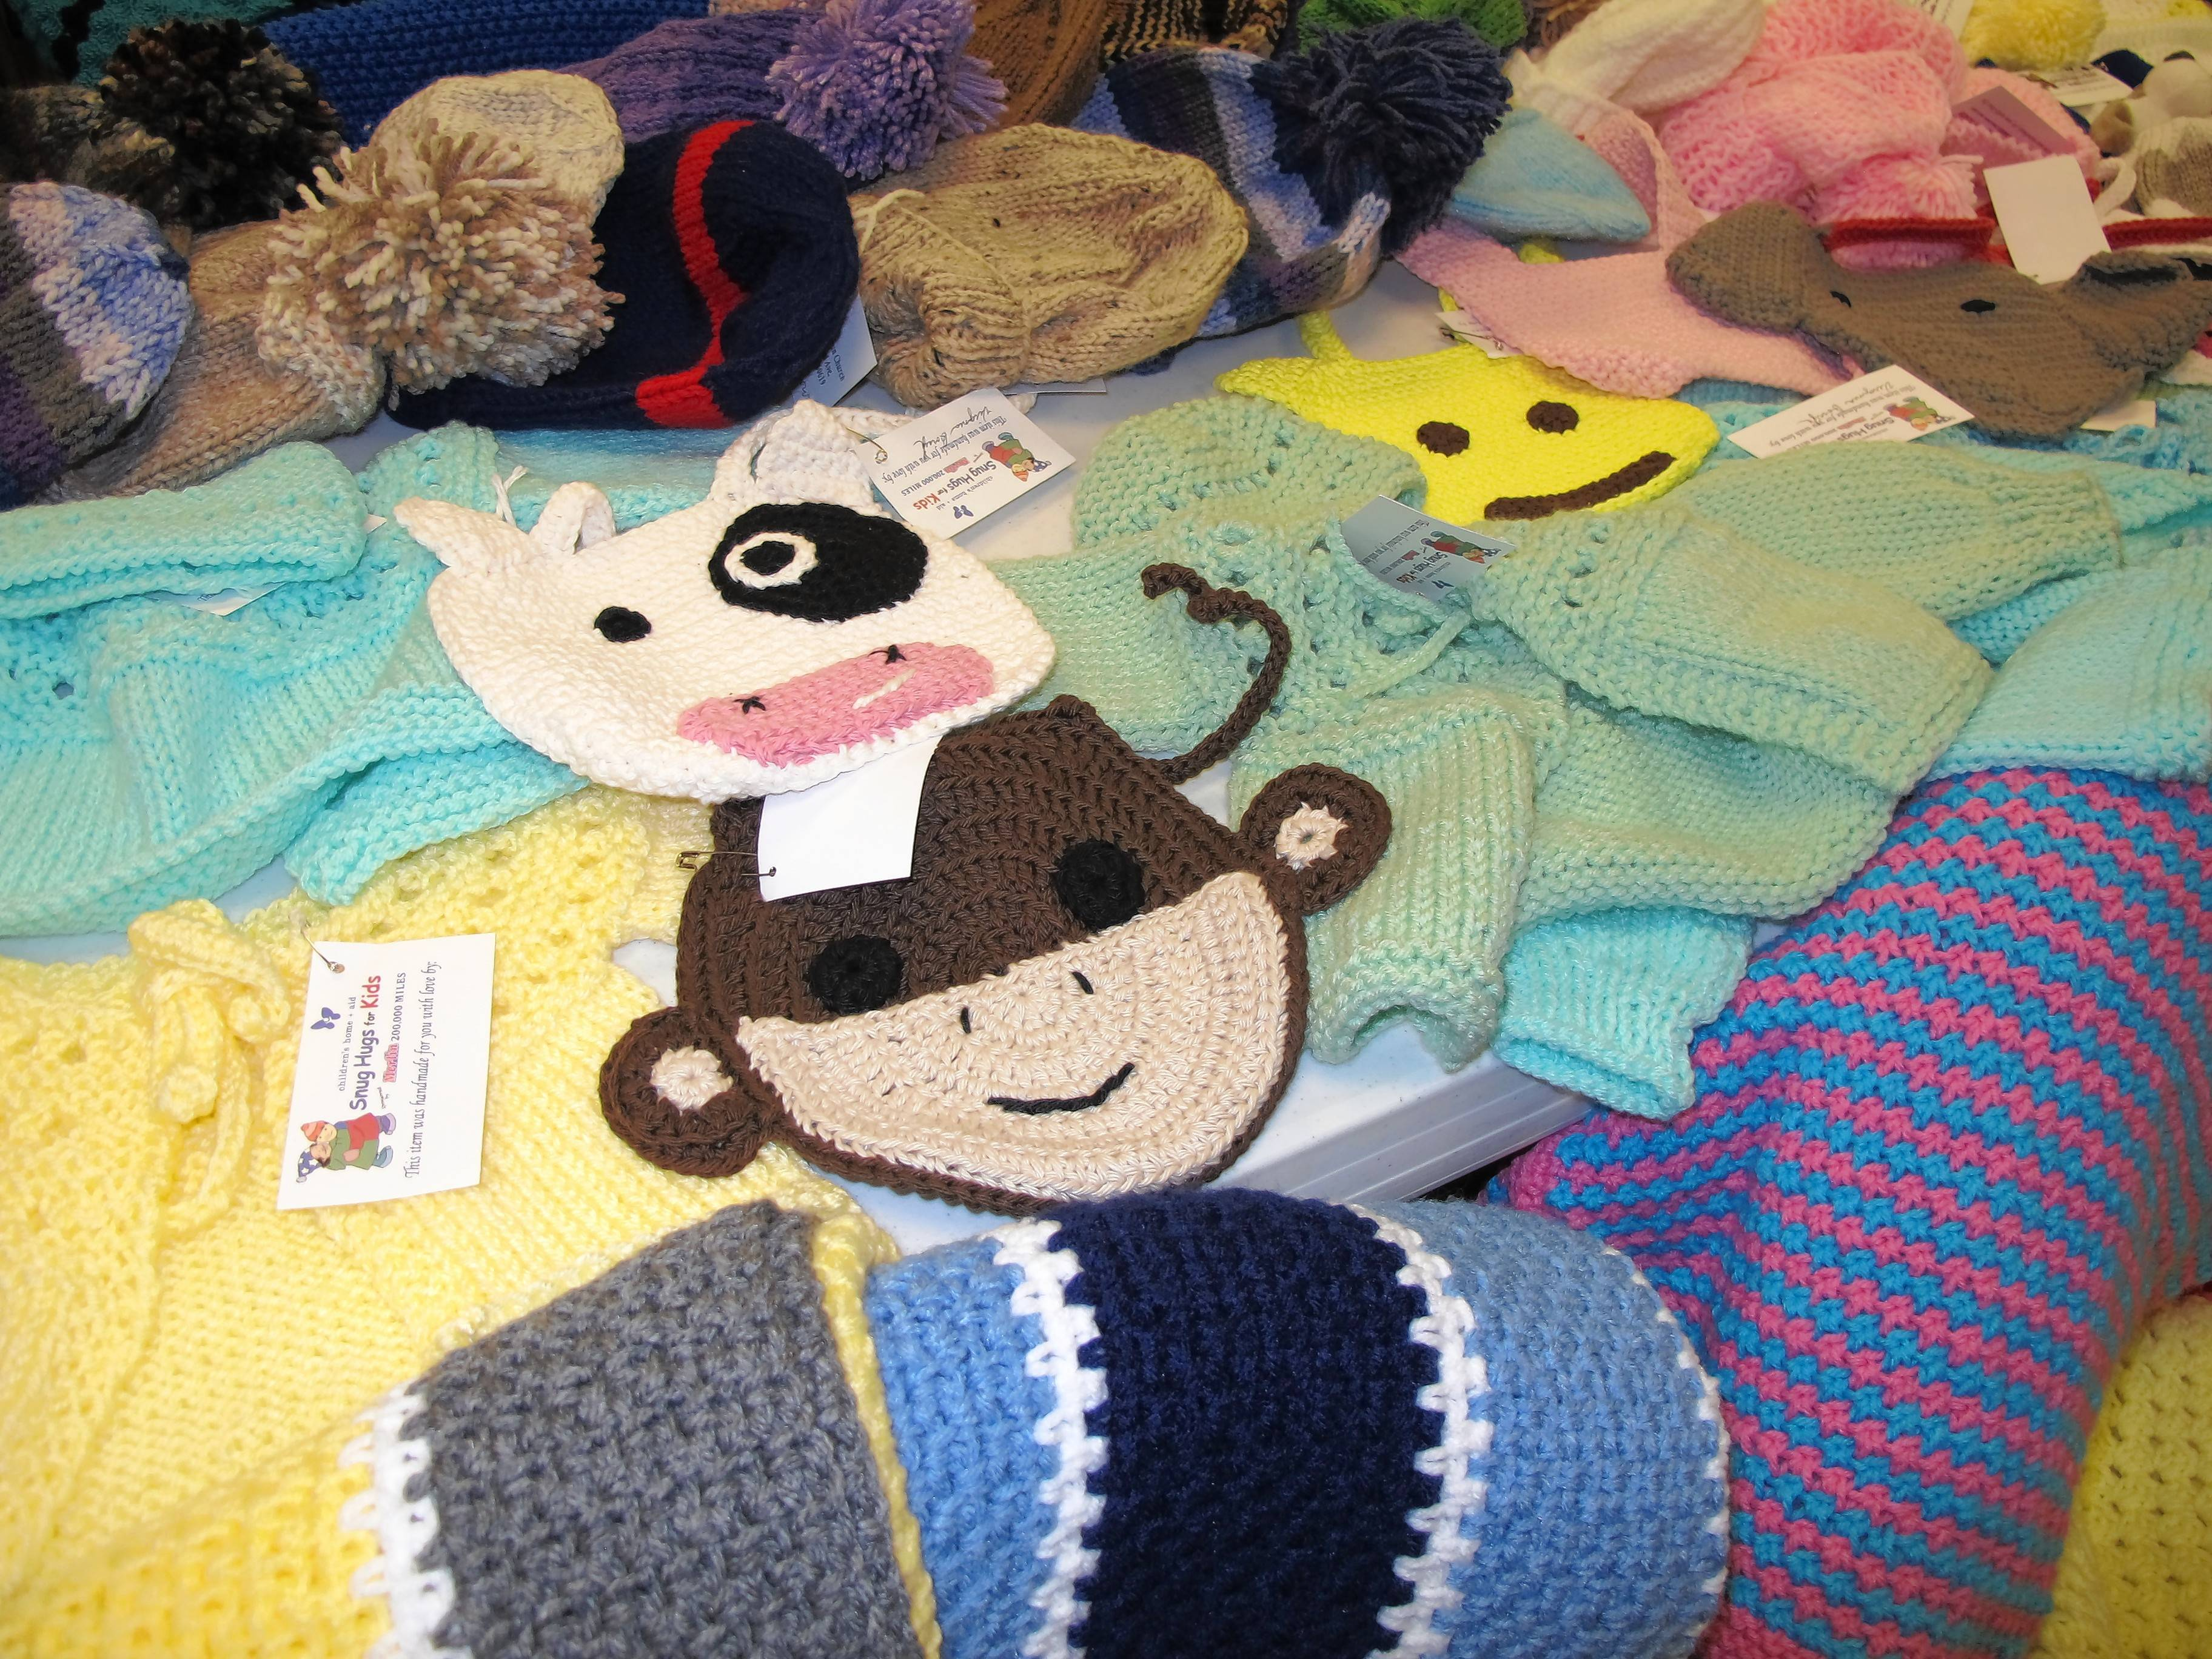 Merlin 200,000 Shops is hosting a Crochet & Knit-A-Thon through Dec. 12, to benefit Snug Hugs for Kids, which provides warm winter clothing for children served in Illinois by Children's Home & Aid. Persons of all ages who knit or crochet are invited to participate.